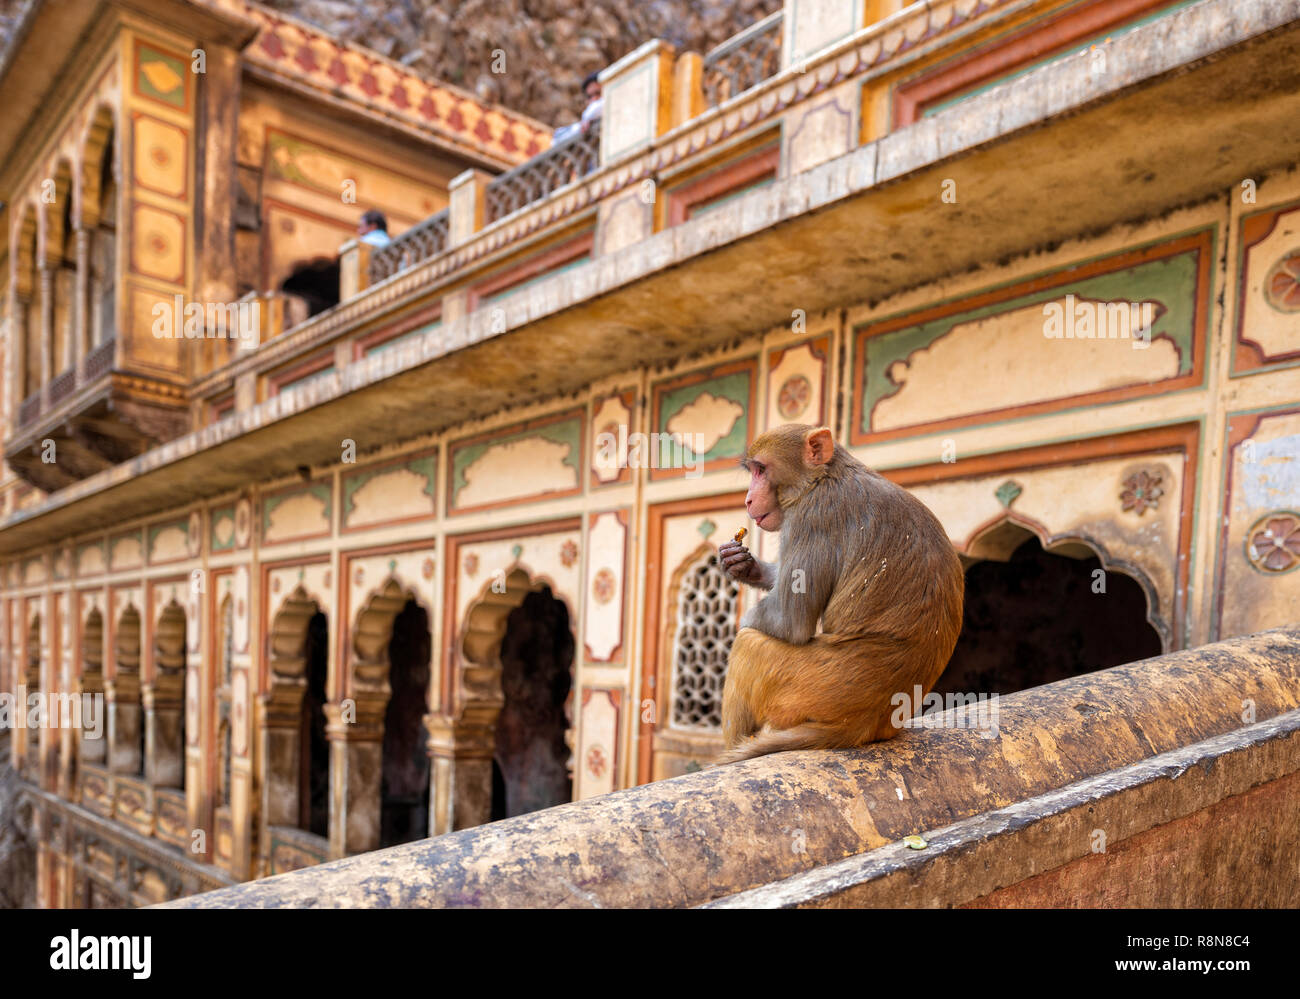 The Monkey Temple of Galtaji Jaipur India Stock Photo